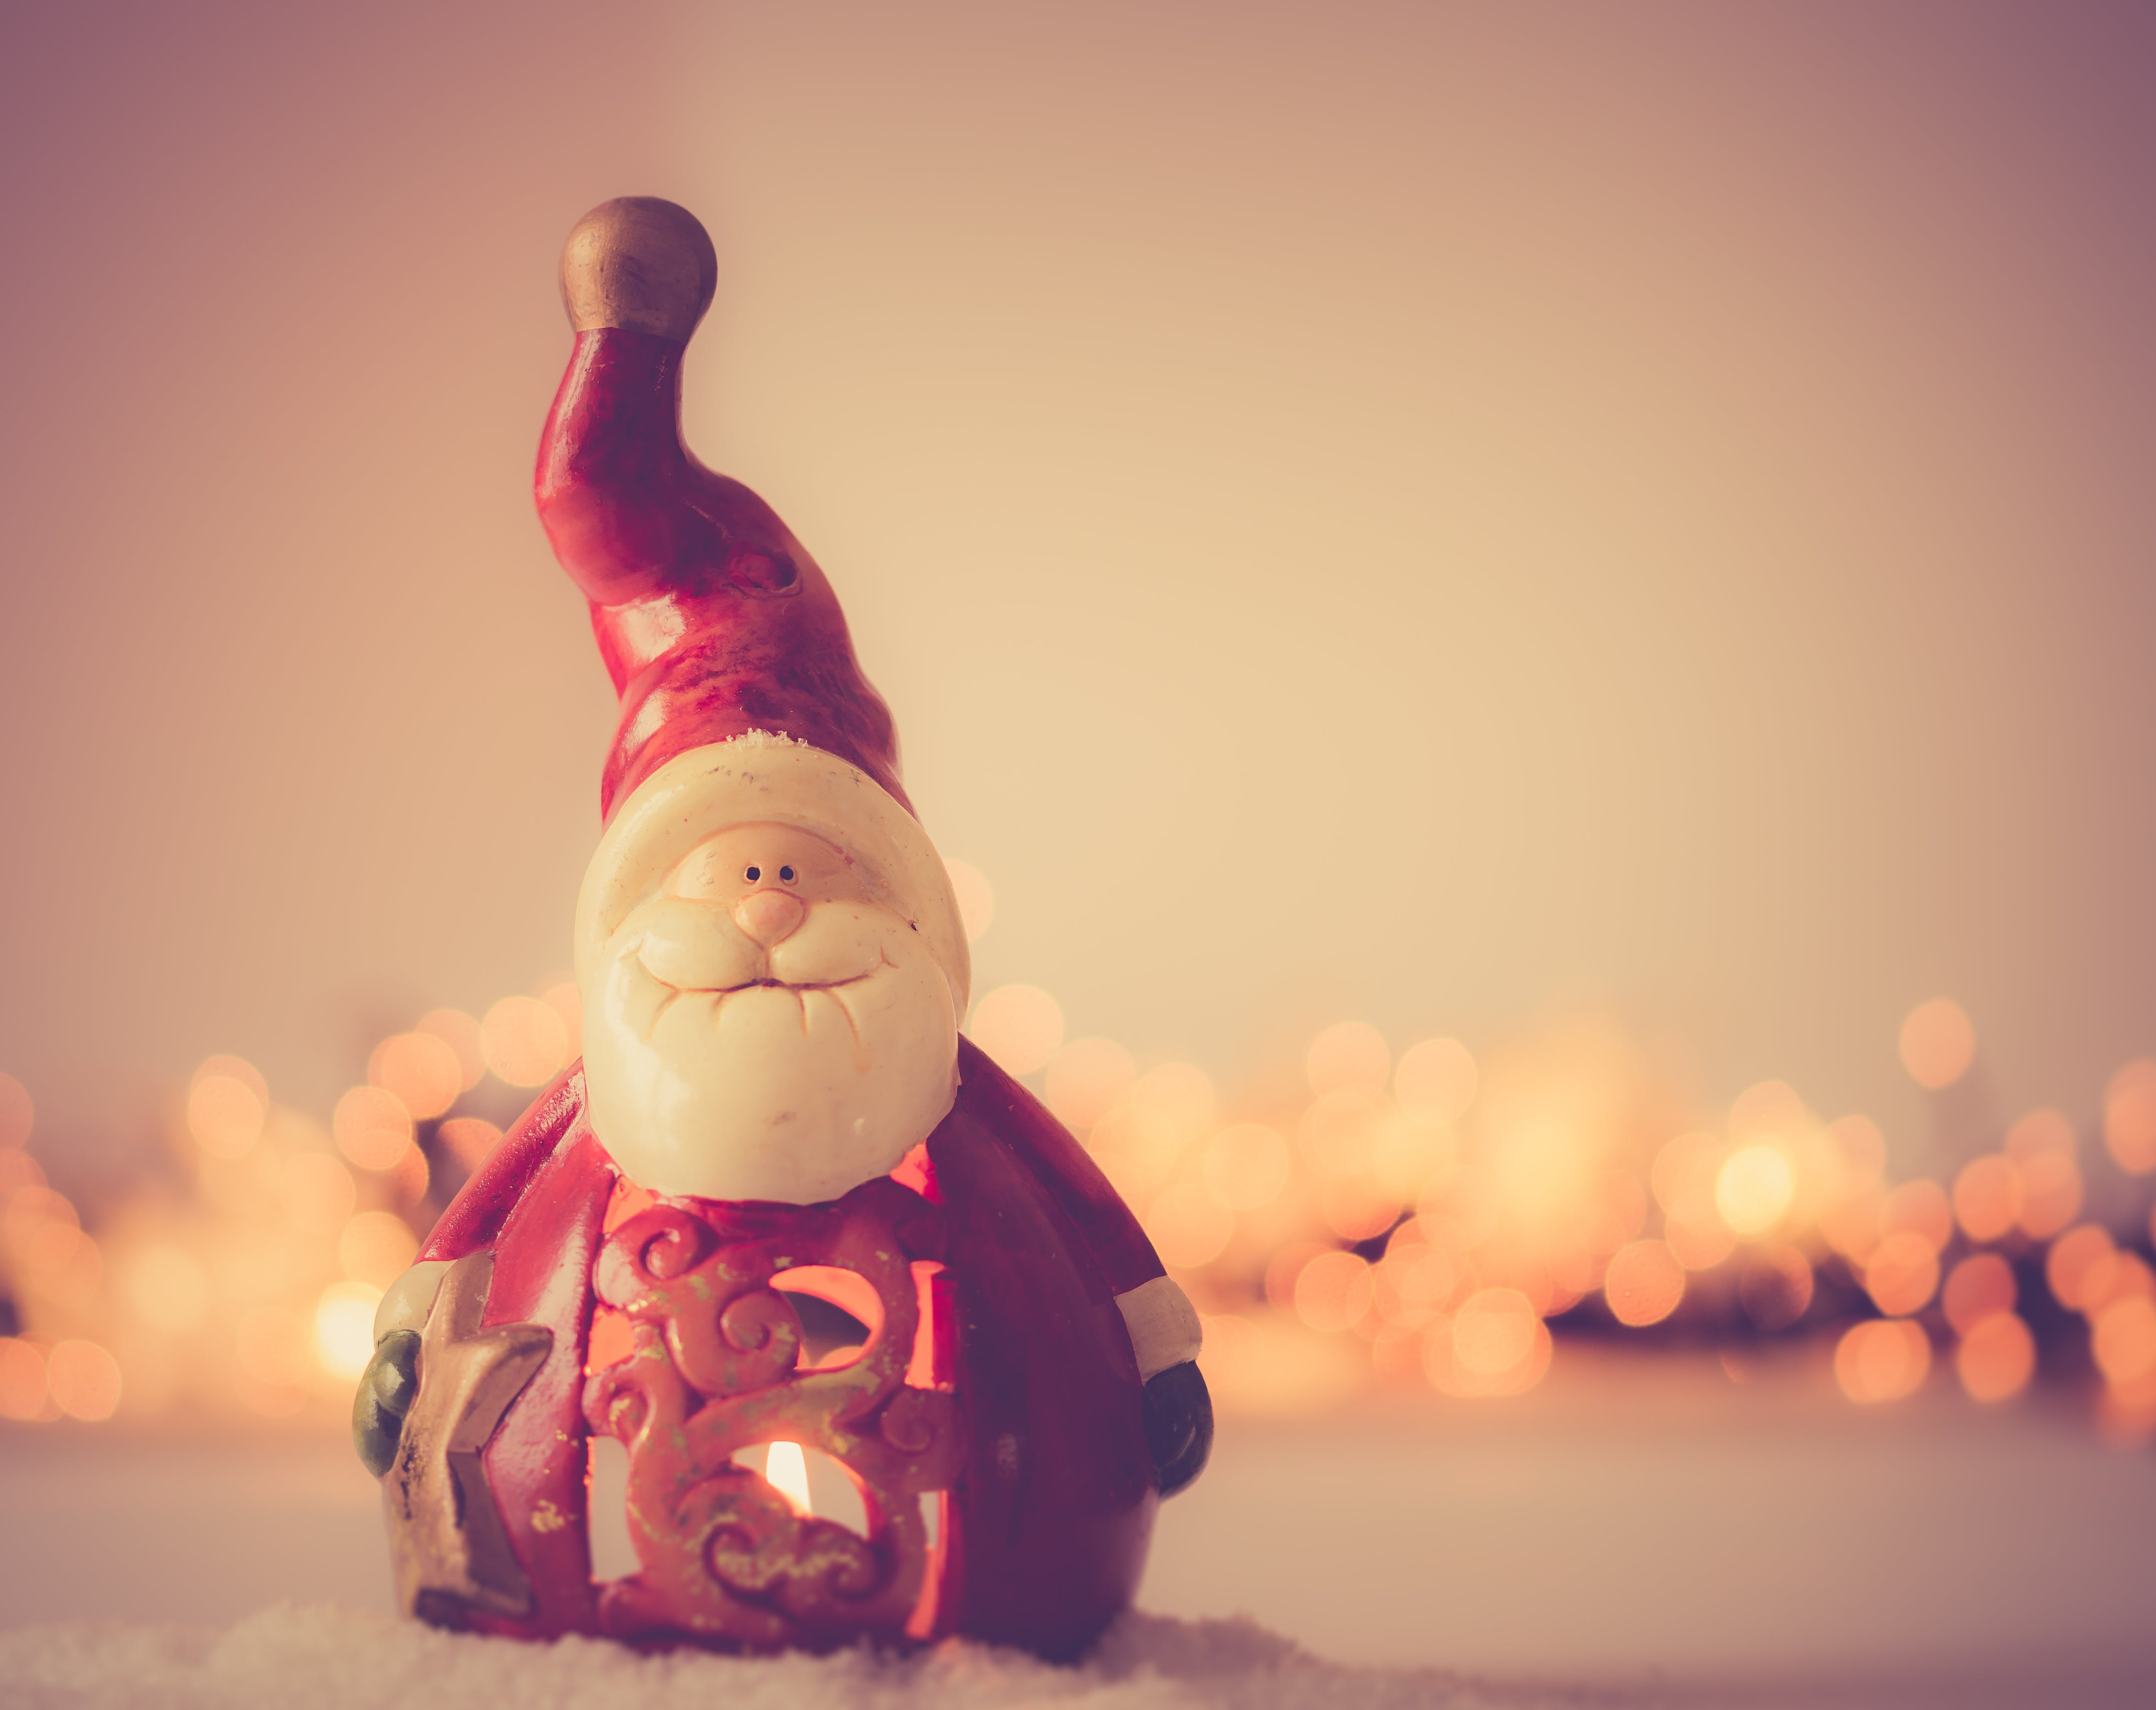 Shallow Focus Photography of Santa Claus Figurine